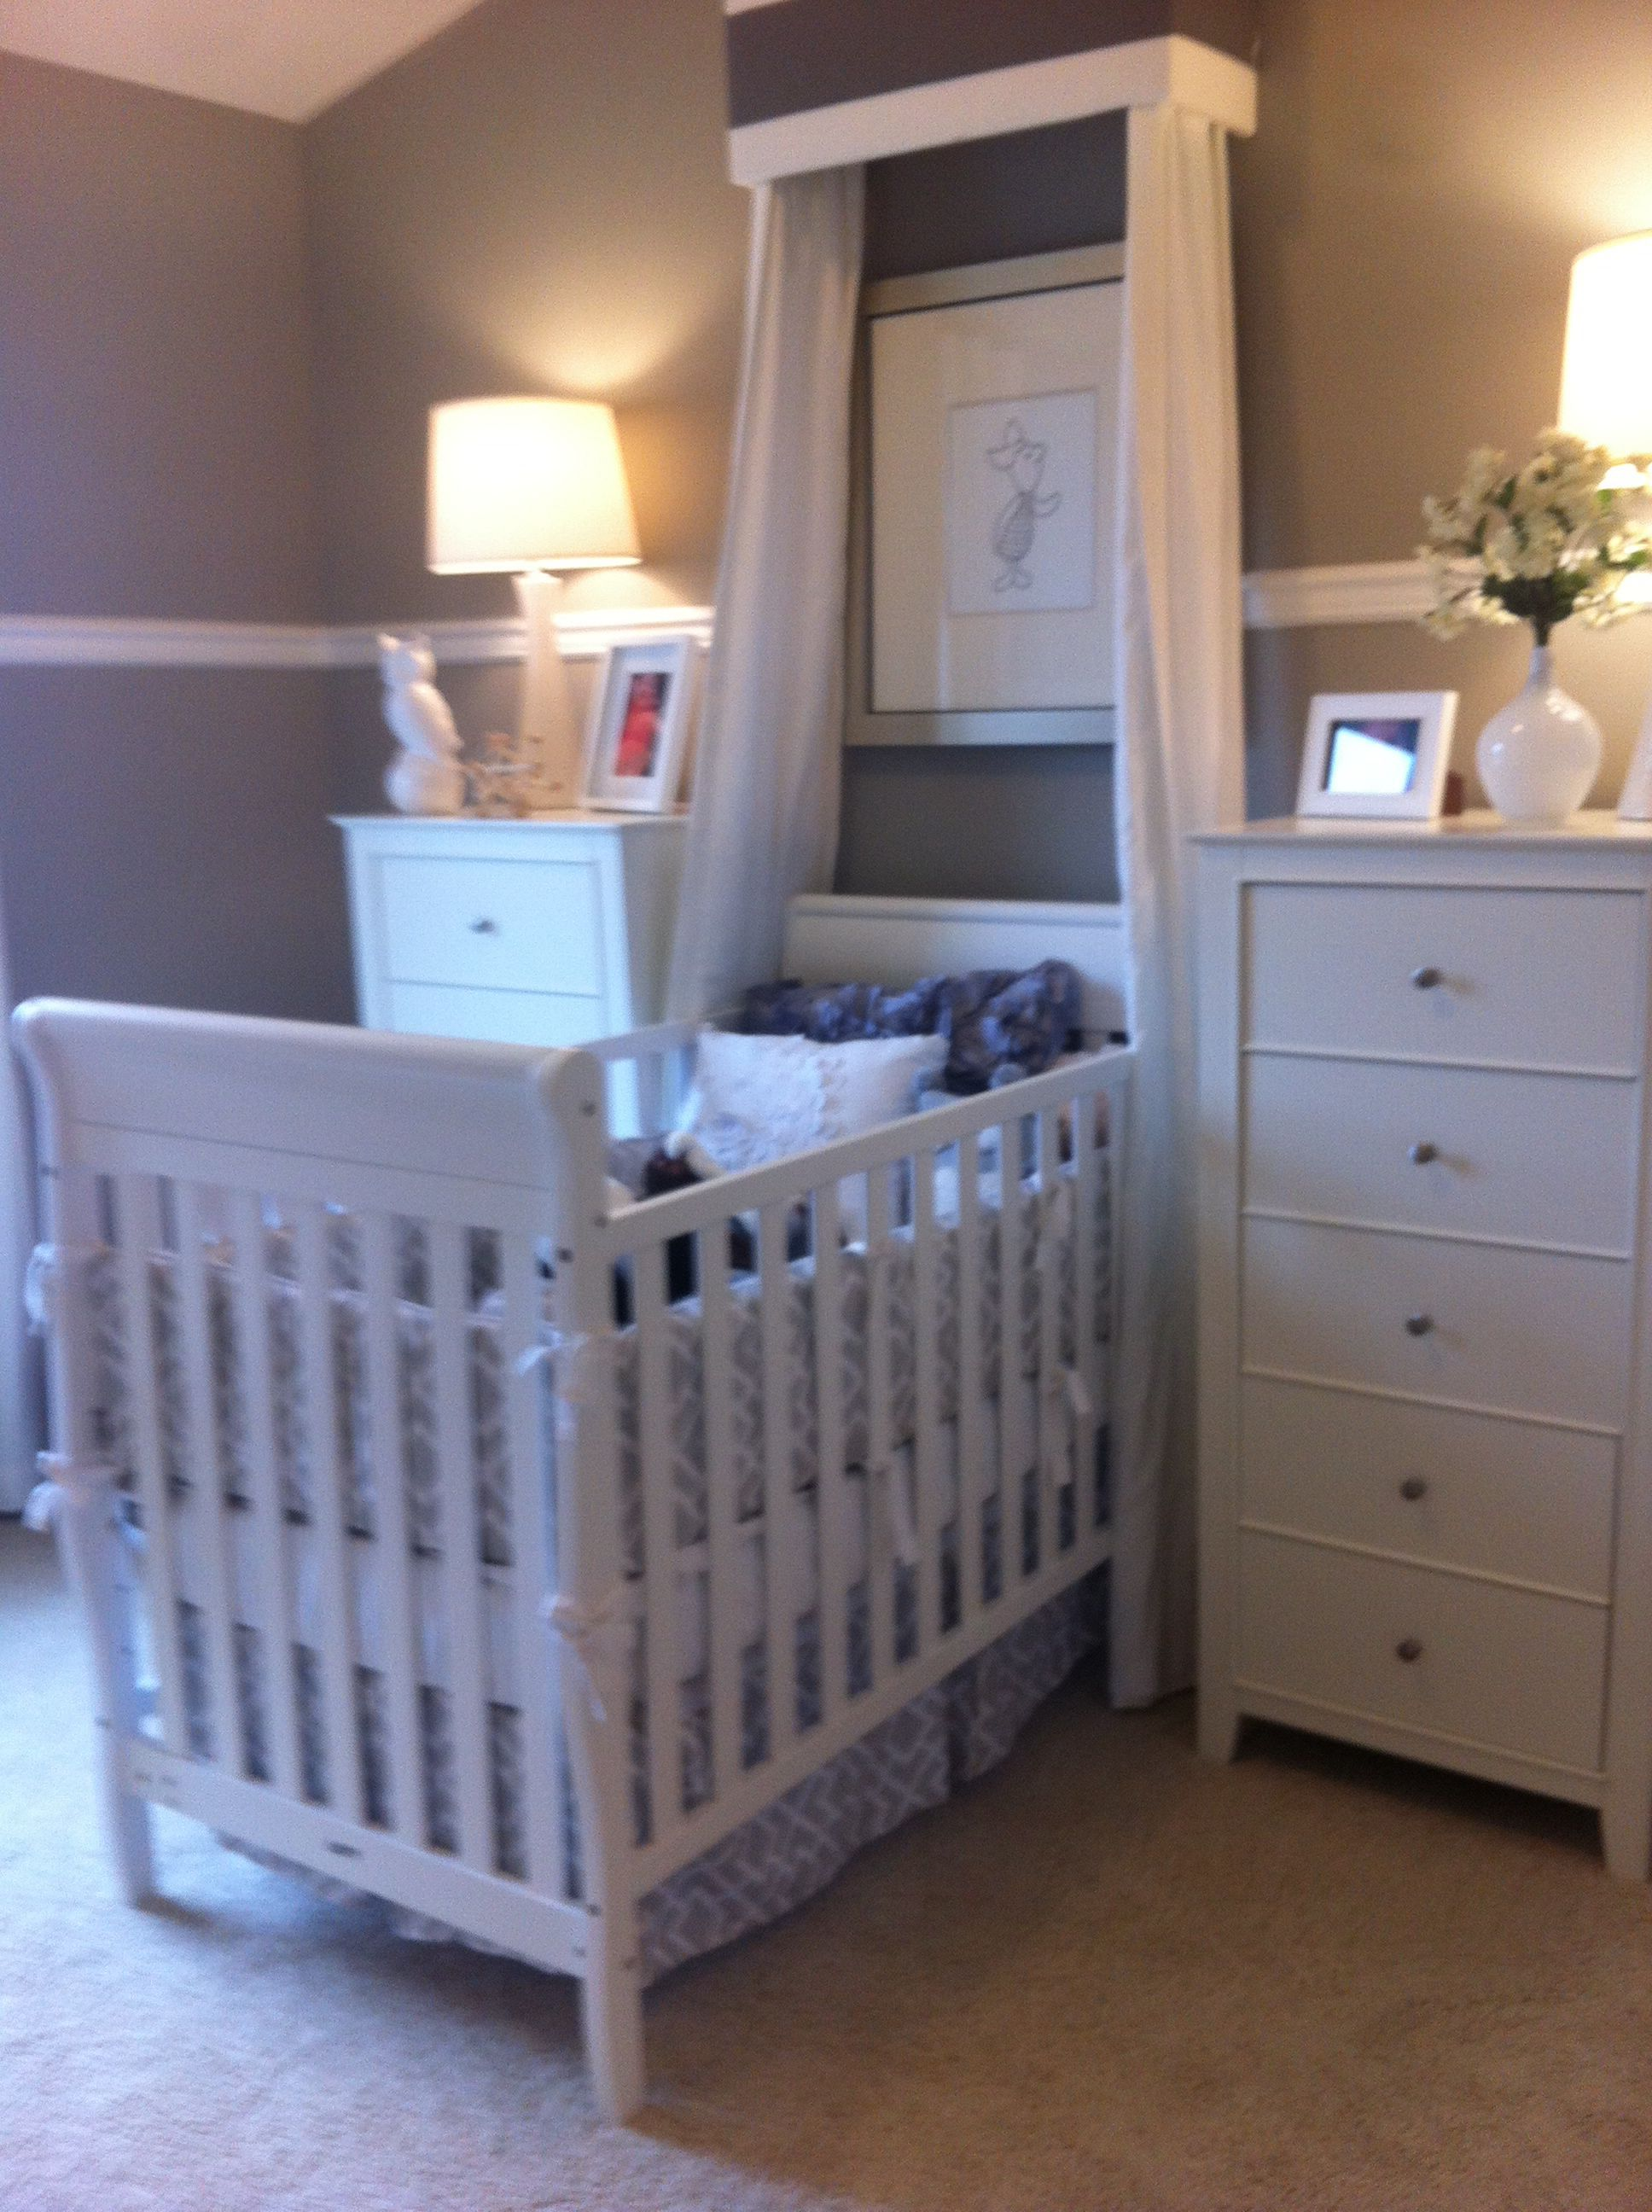 Baby Room: Placement Of The Crib With The Dressers: Smart.